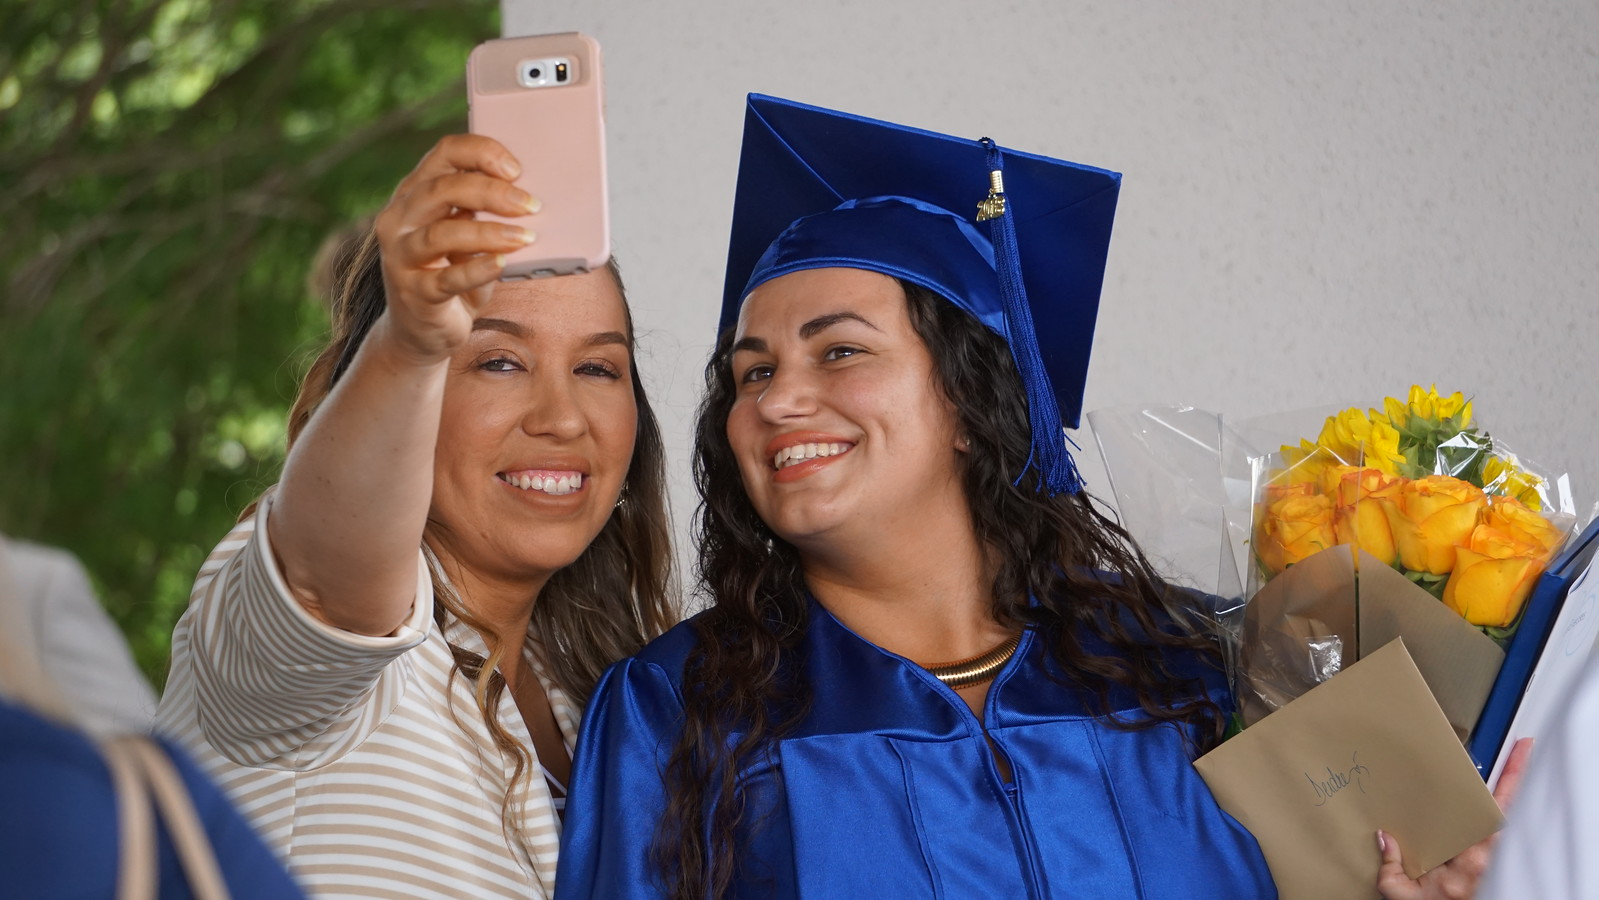 More than 1,000 graduate from Summer 2018 at SPC #spcgrad